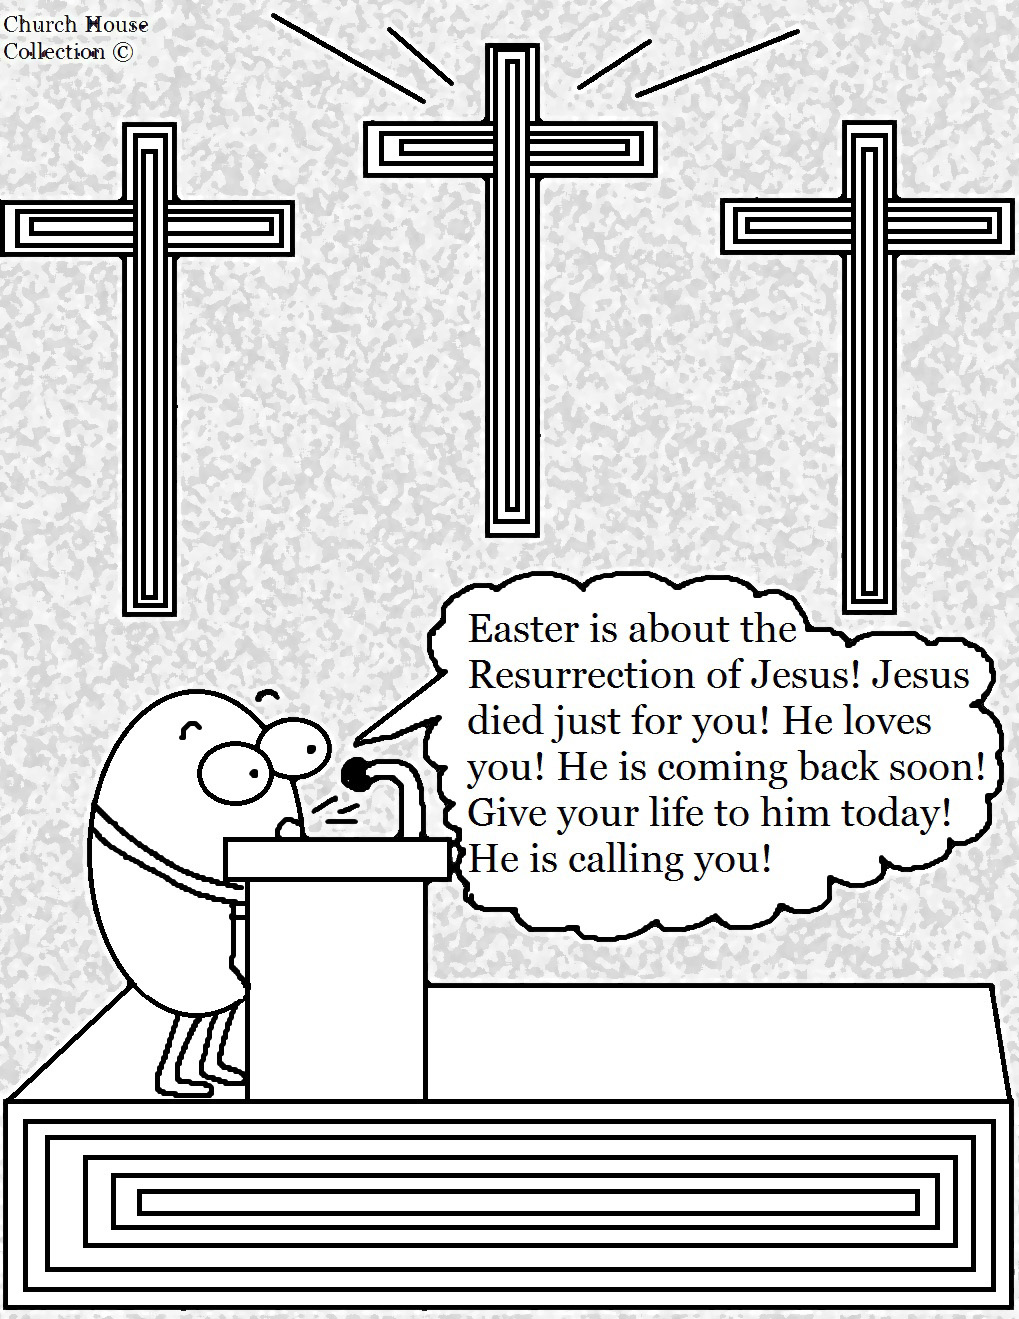 This Is S A Free Easter Egg Preacher Coloring Page I Drew For Kids To Color During Sunday School Or Childrens Church